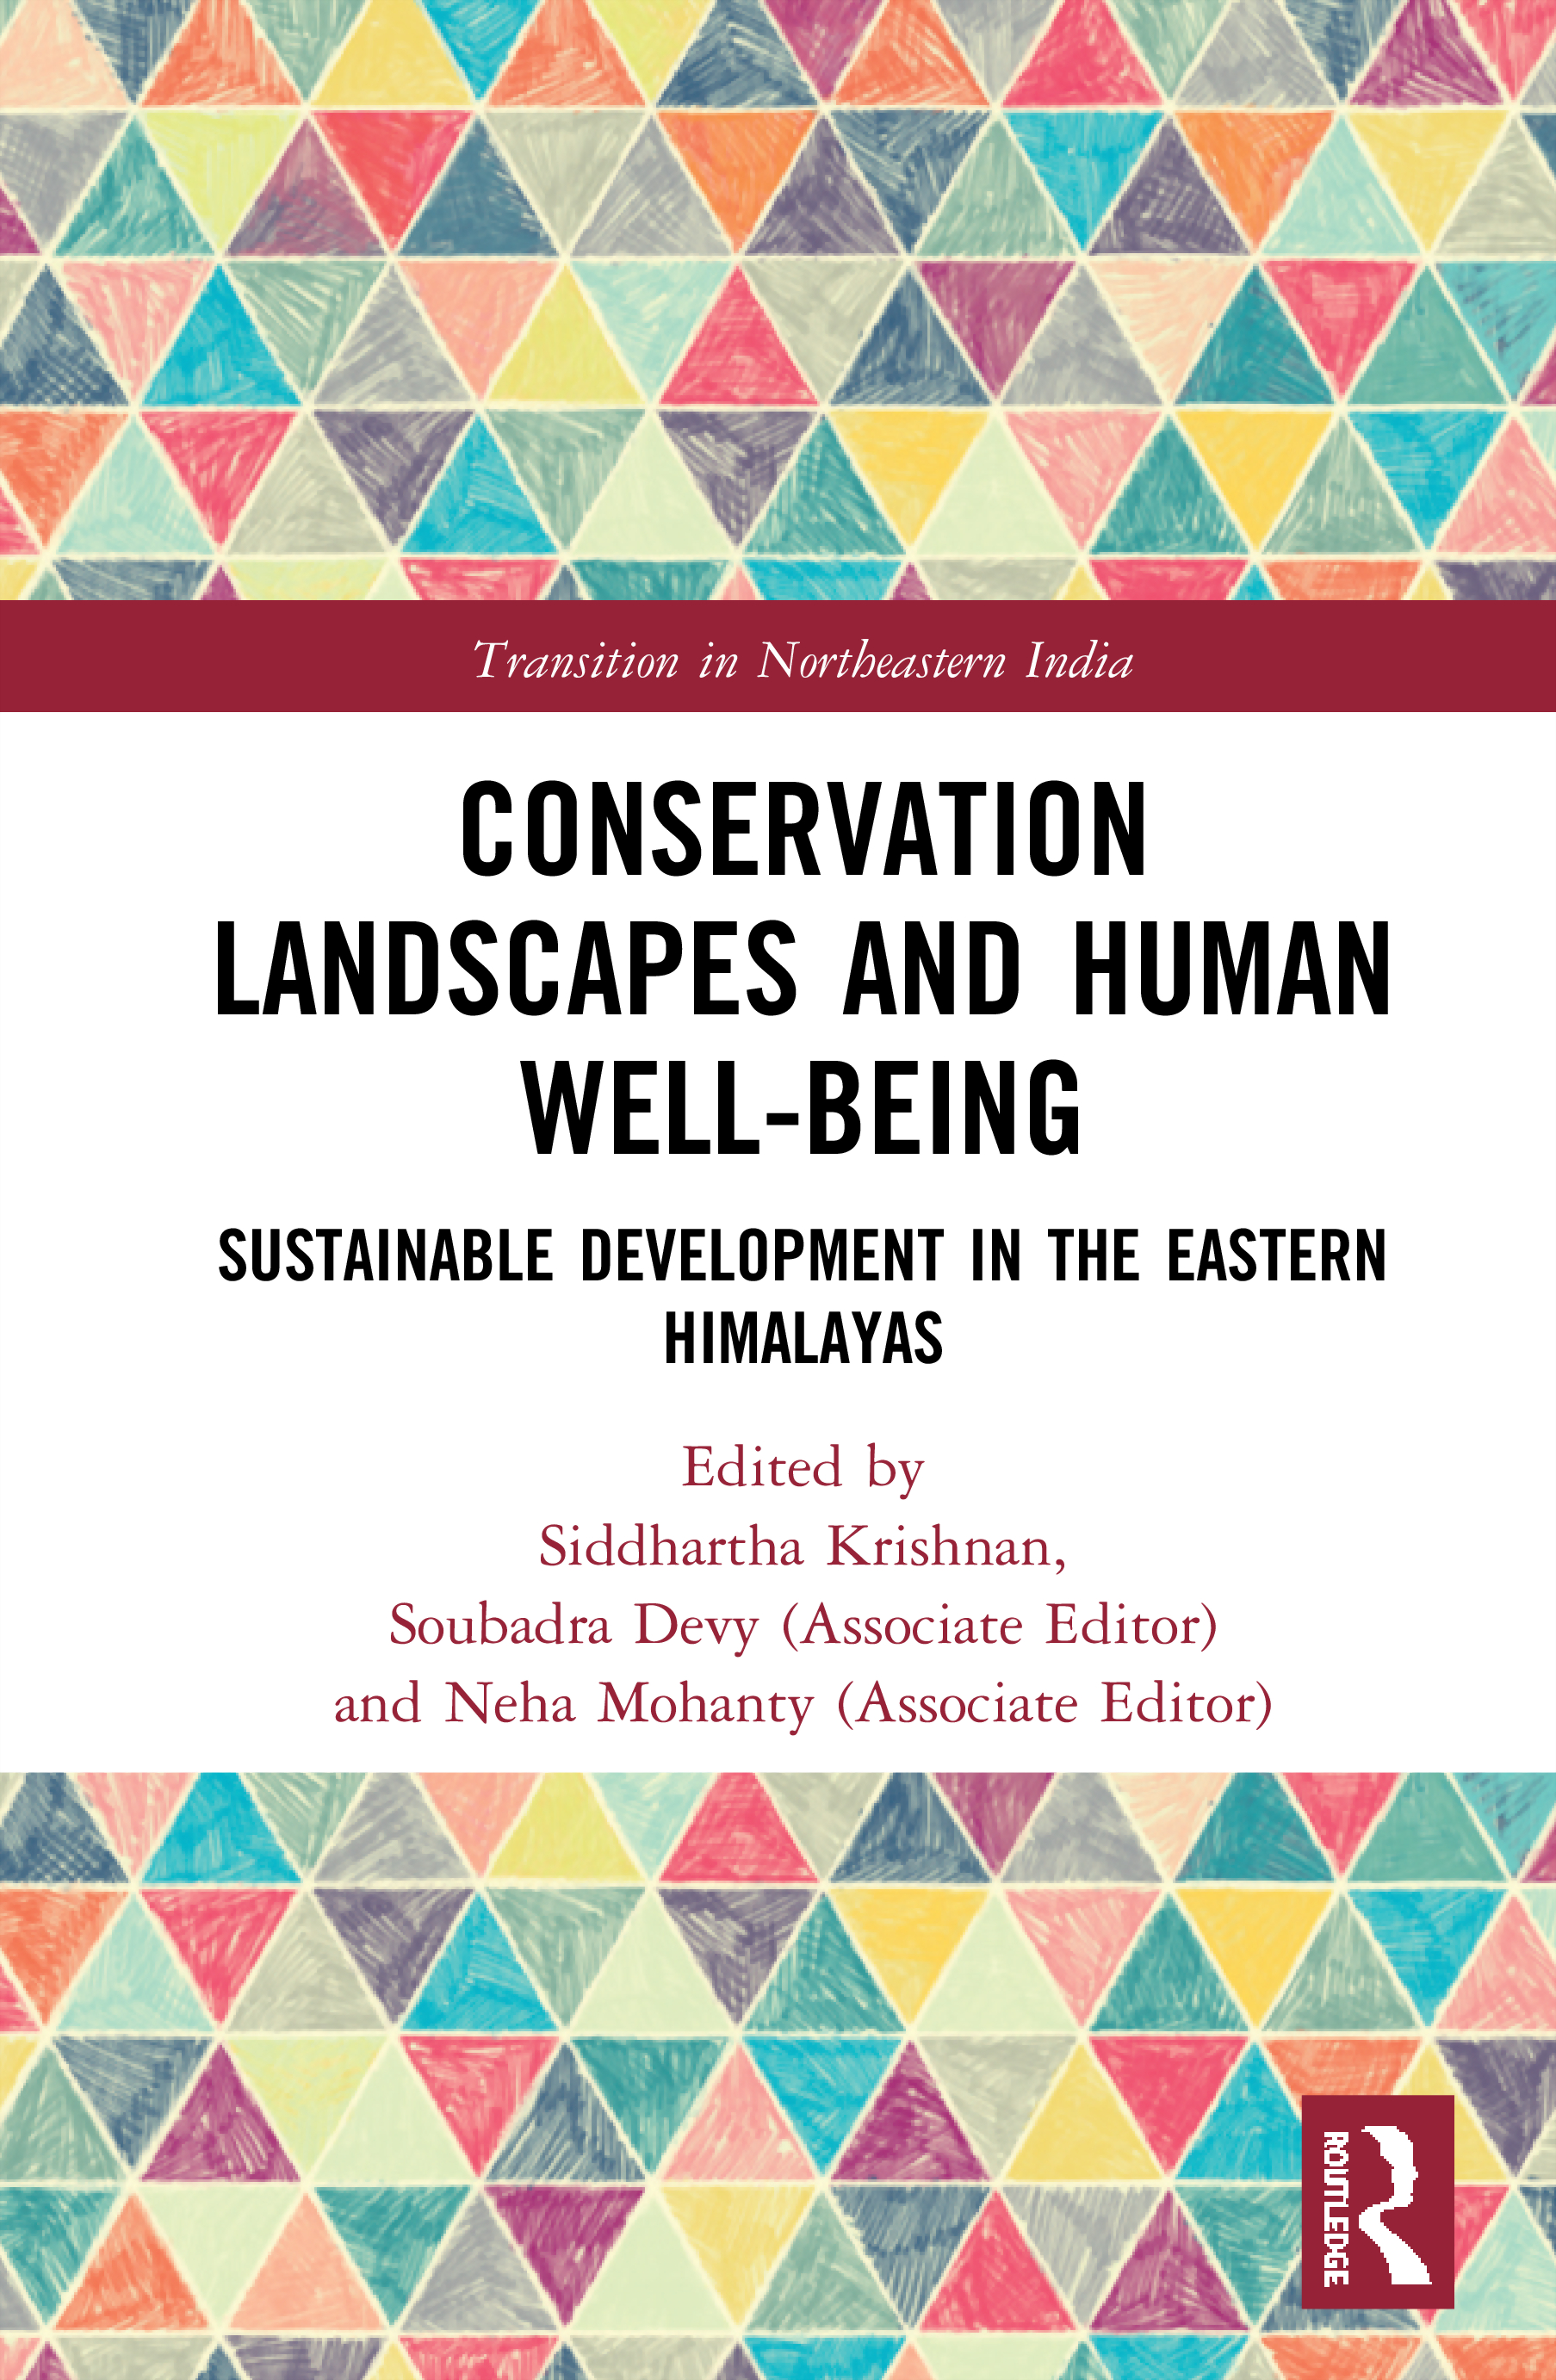 Conservation Landscapes and Human Well-Being: Sustainable Development in the Eastern Himalayas book cover